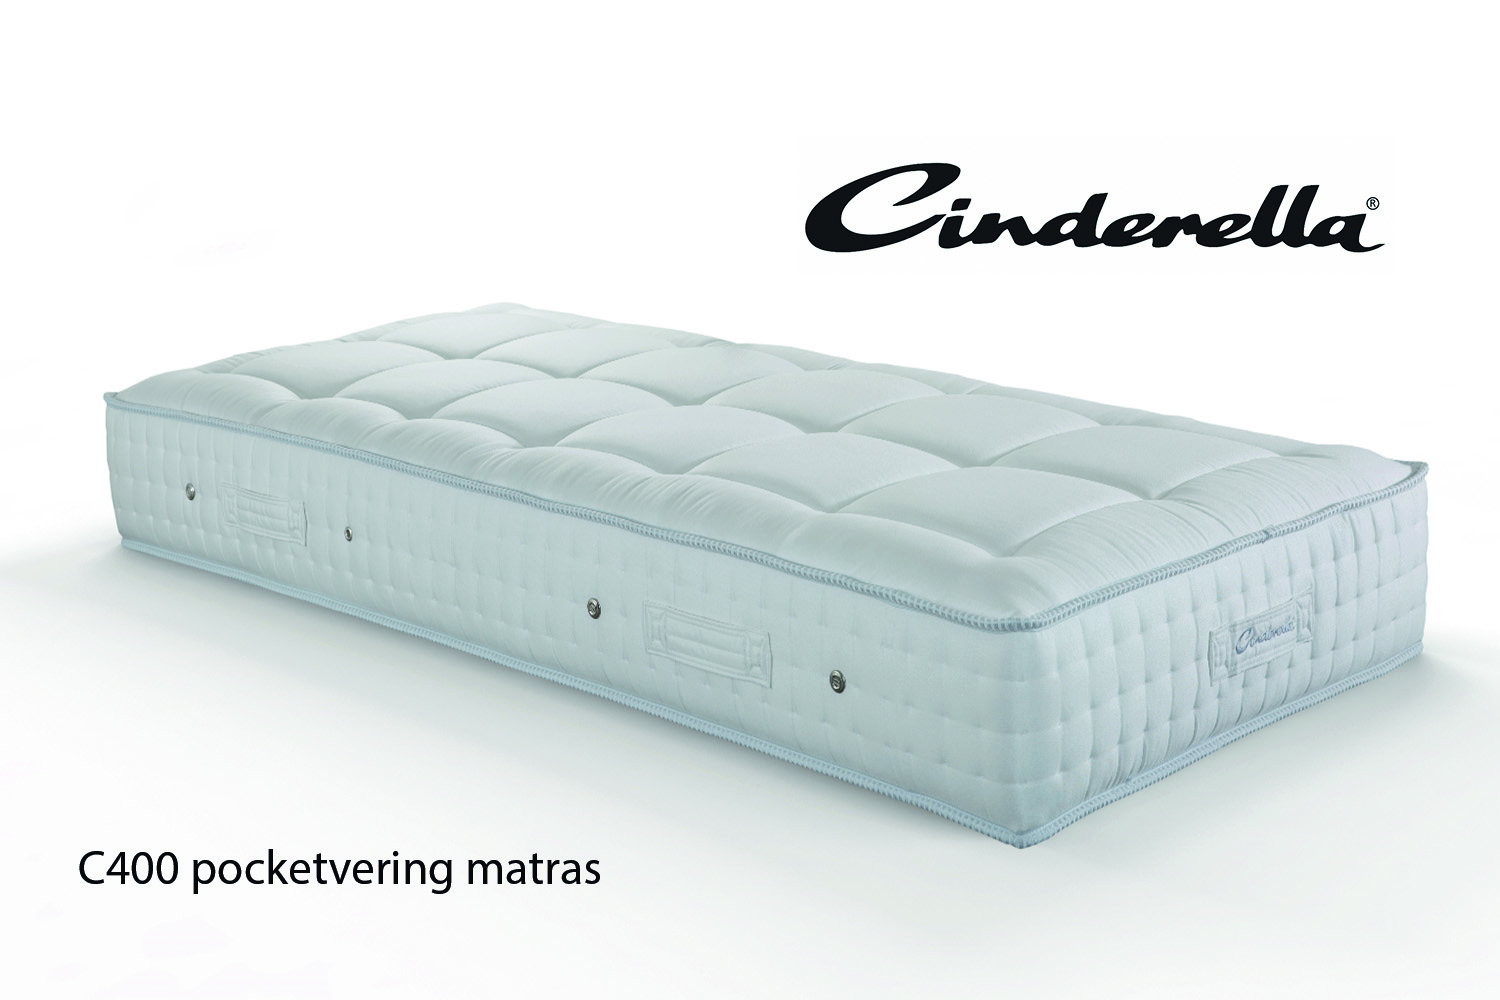 Talalay Matras Cinderella Pocketvering Matras C400